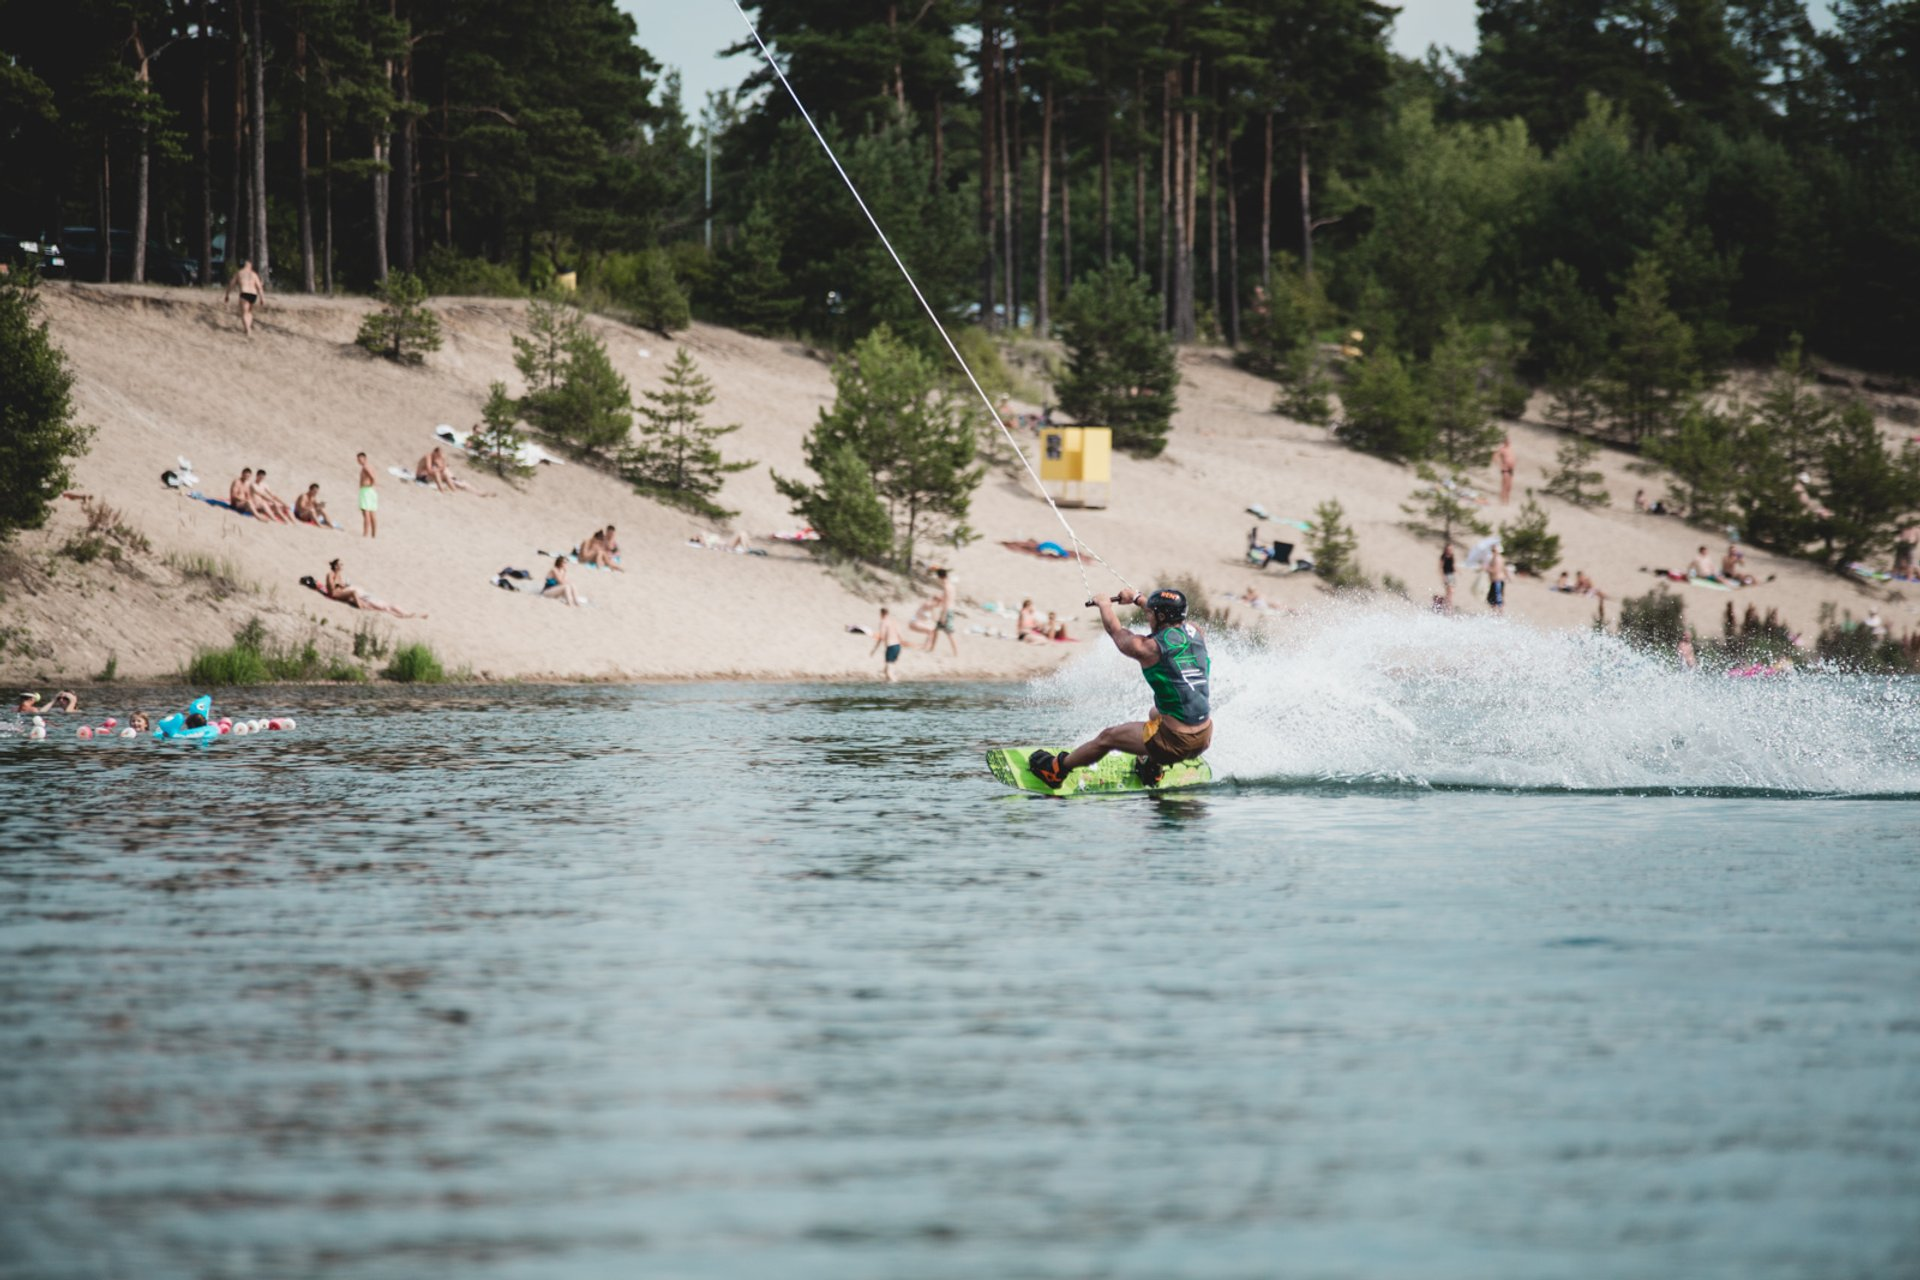 Windsurfing and Kitesurfing in Estonia - Best Season 2020